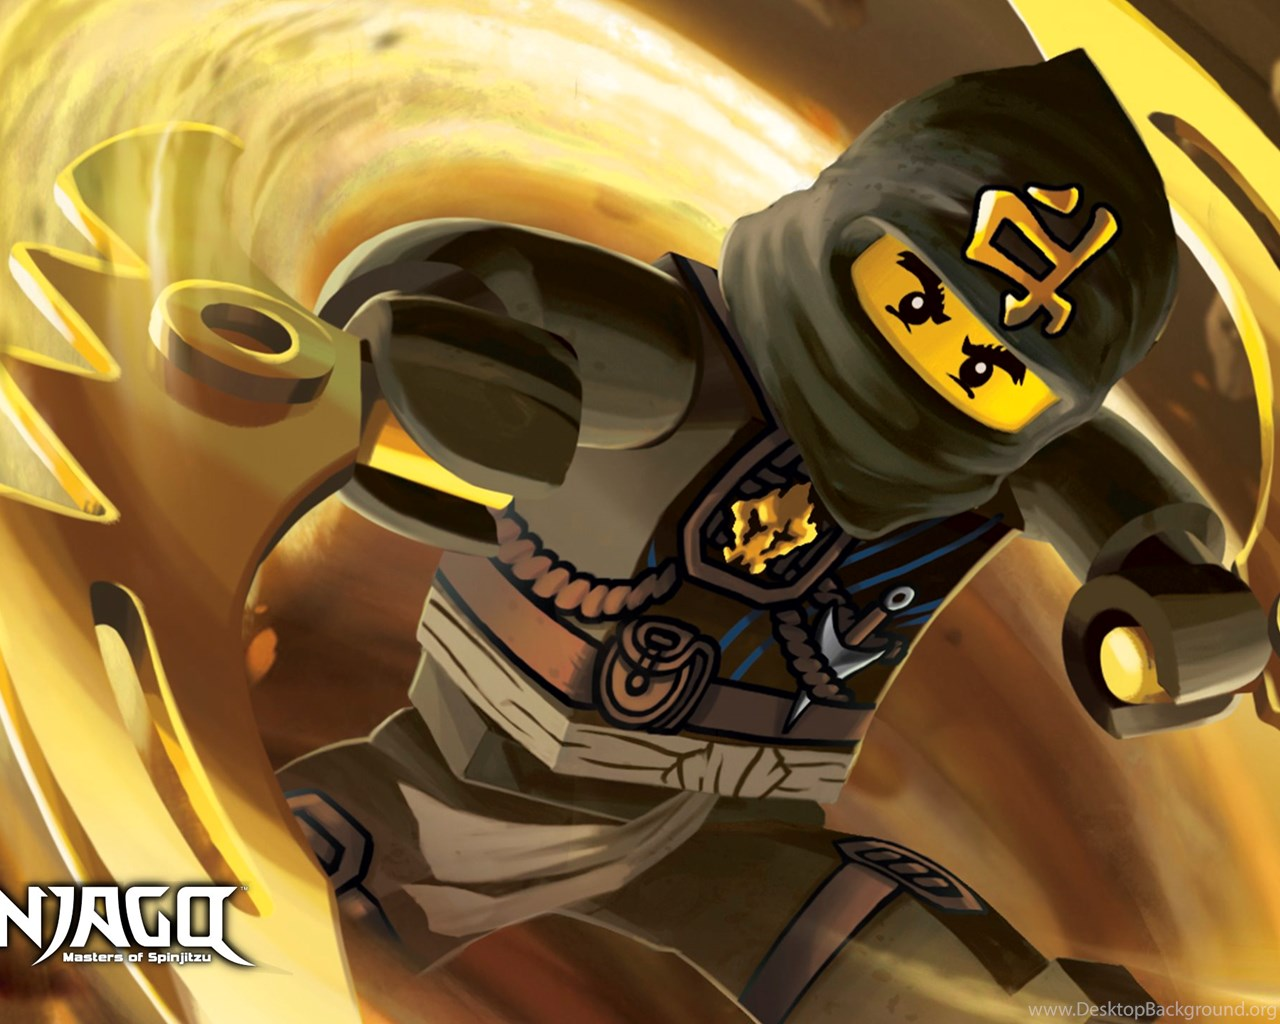 Cole Wallpapers Activities Ninjago LEGO com Desktop Background